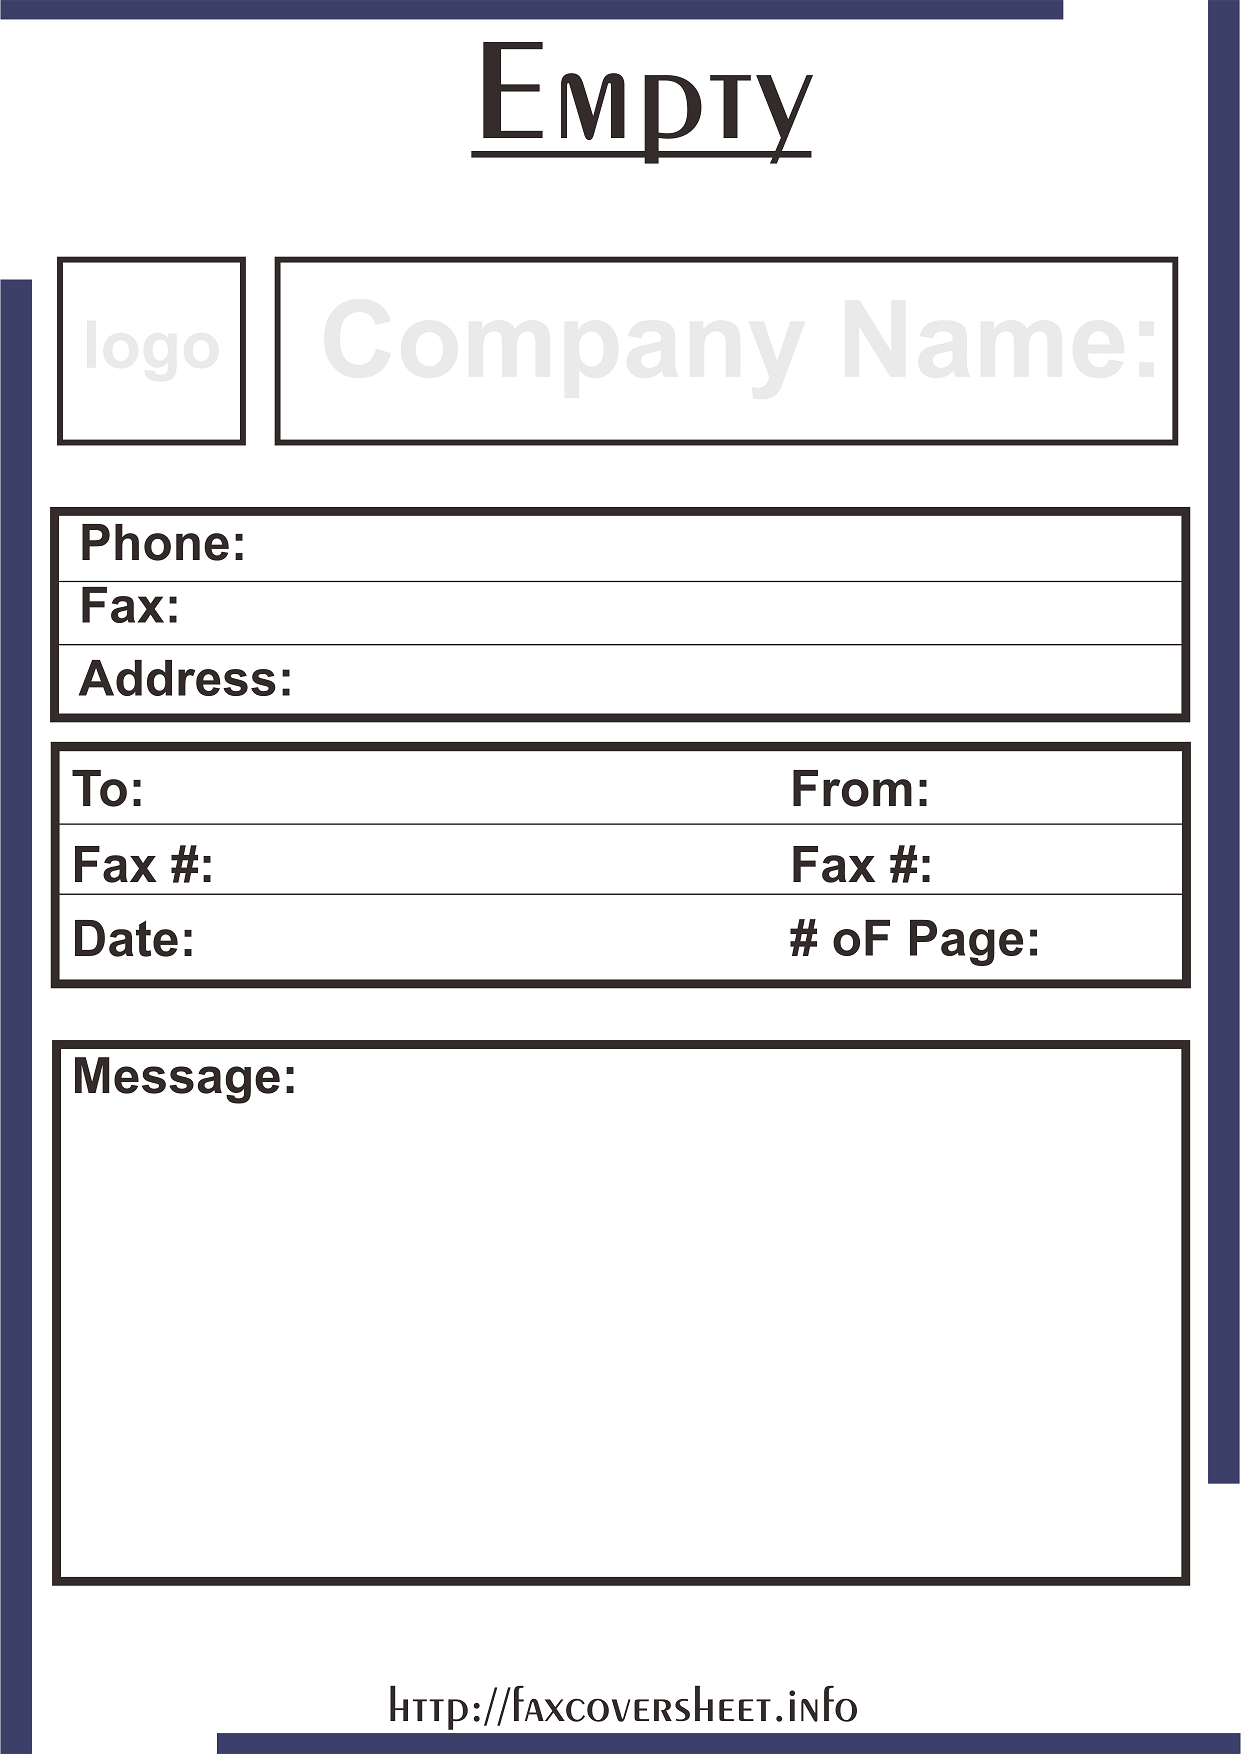 Empty Logo Fax Cover Sheet Templates